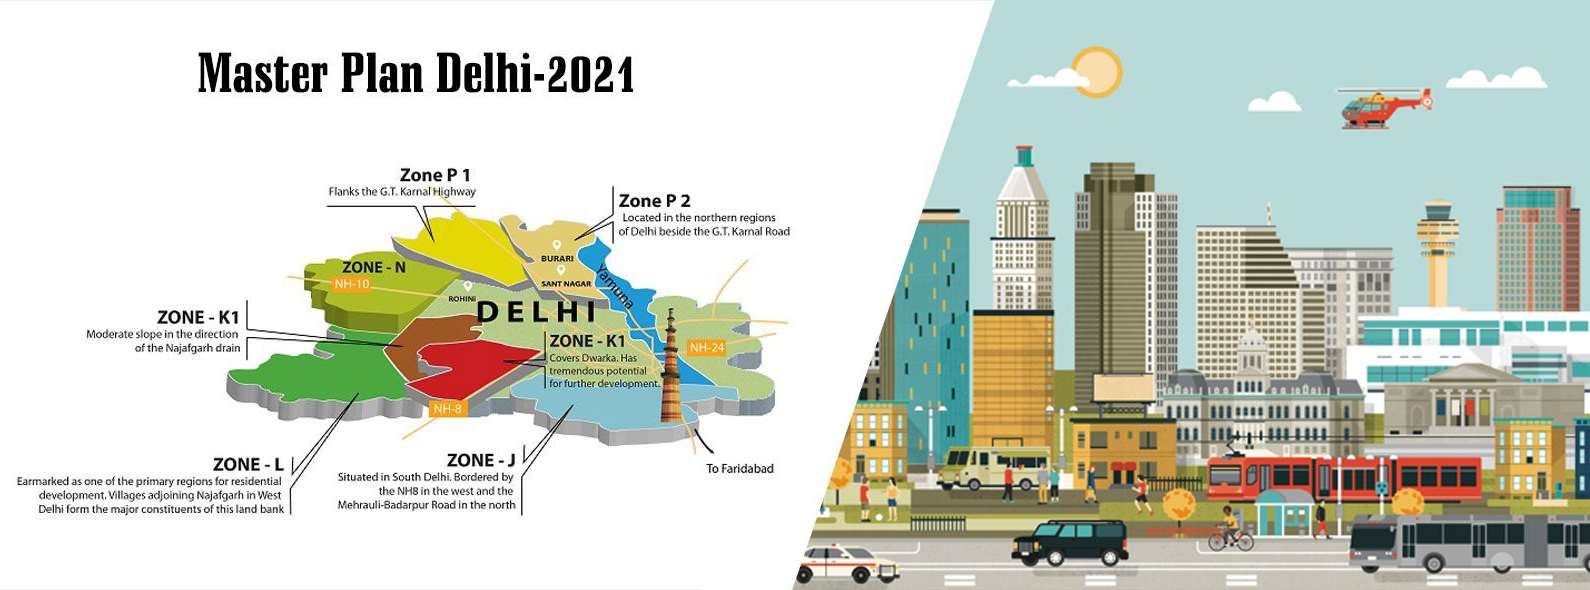 DDA Introduces Changes in the 2021 Master Plan of Delhi